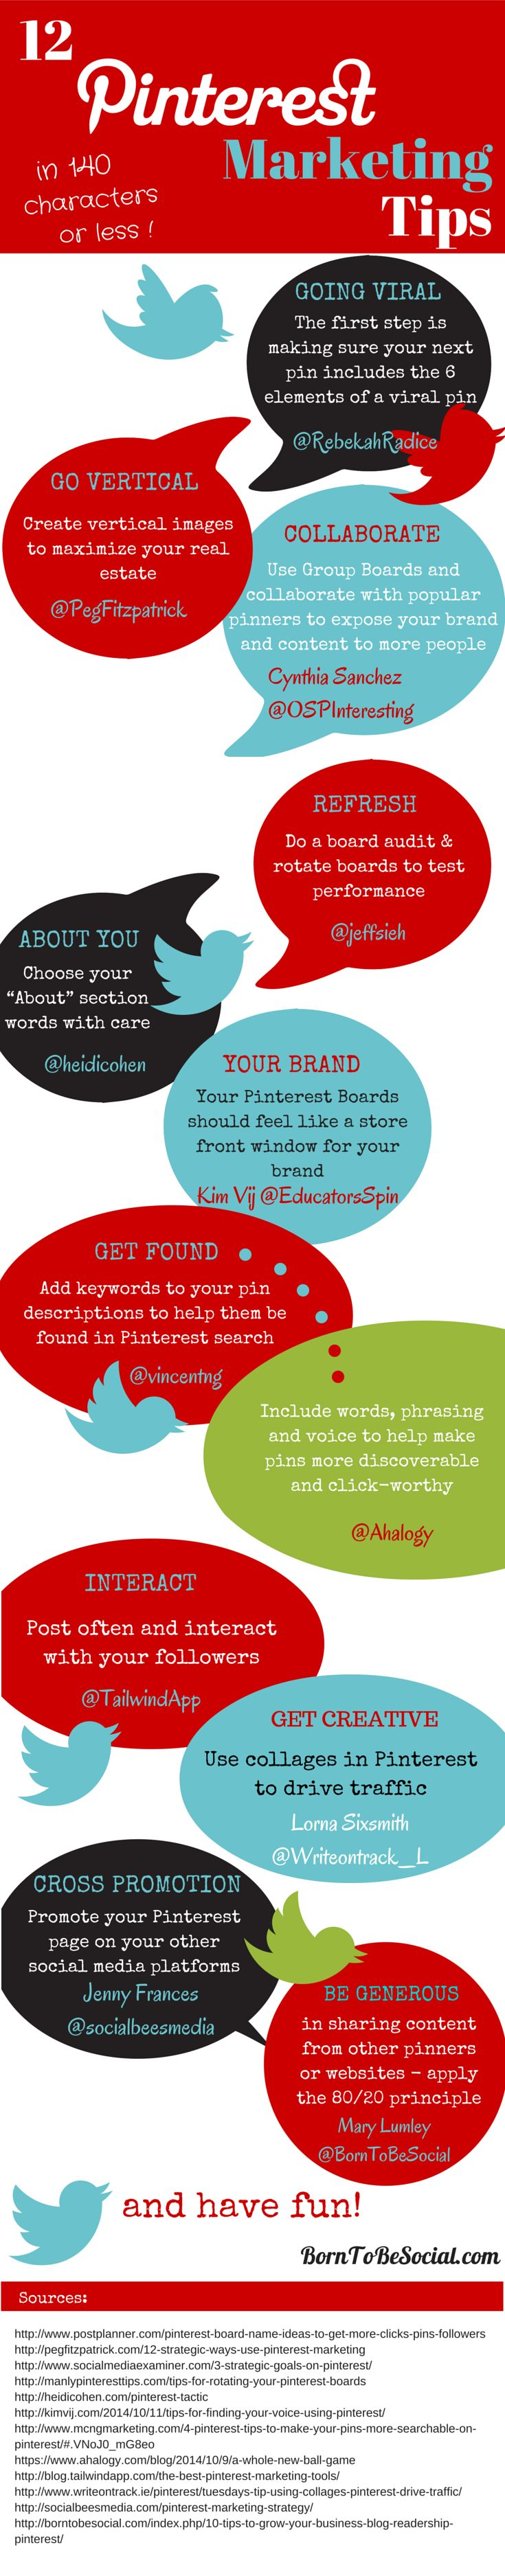 Tweetable Pinterest Marketing Tips from the Pros [Infographic] BornToBeSocial.com